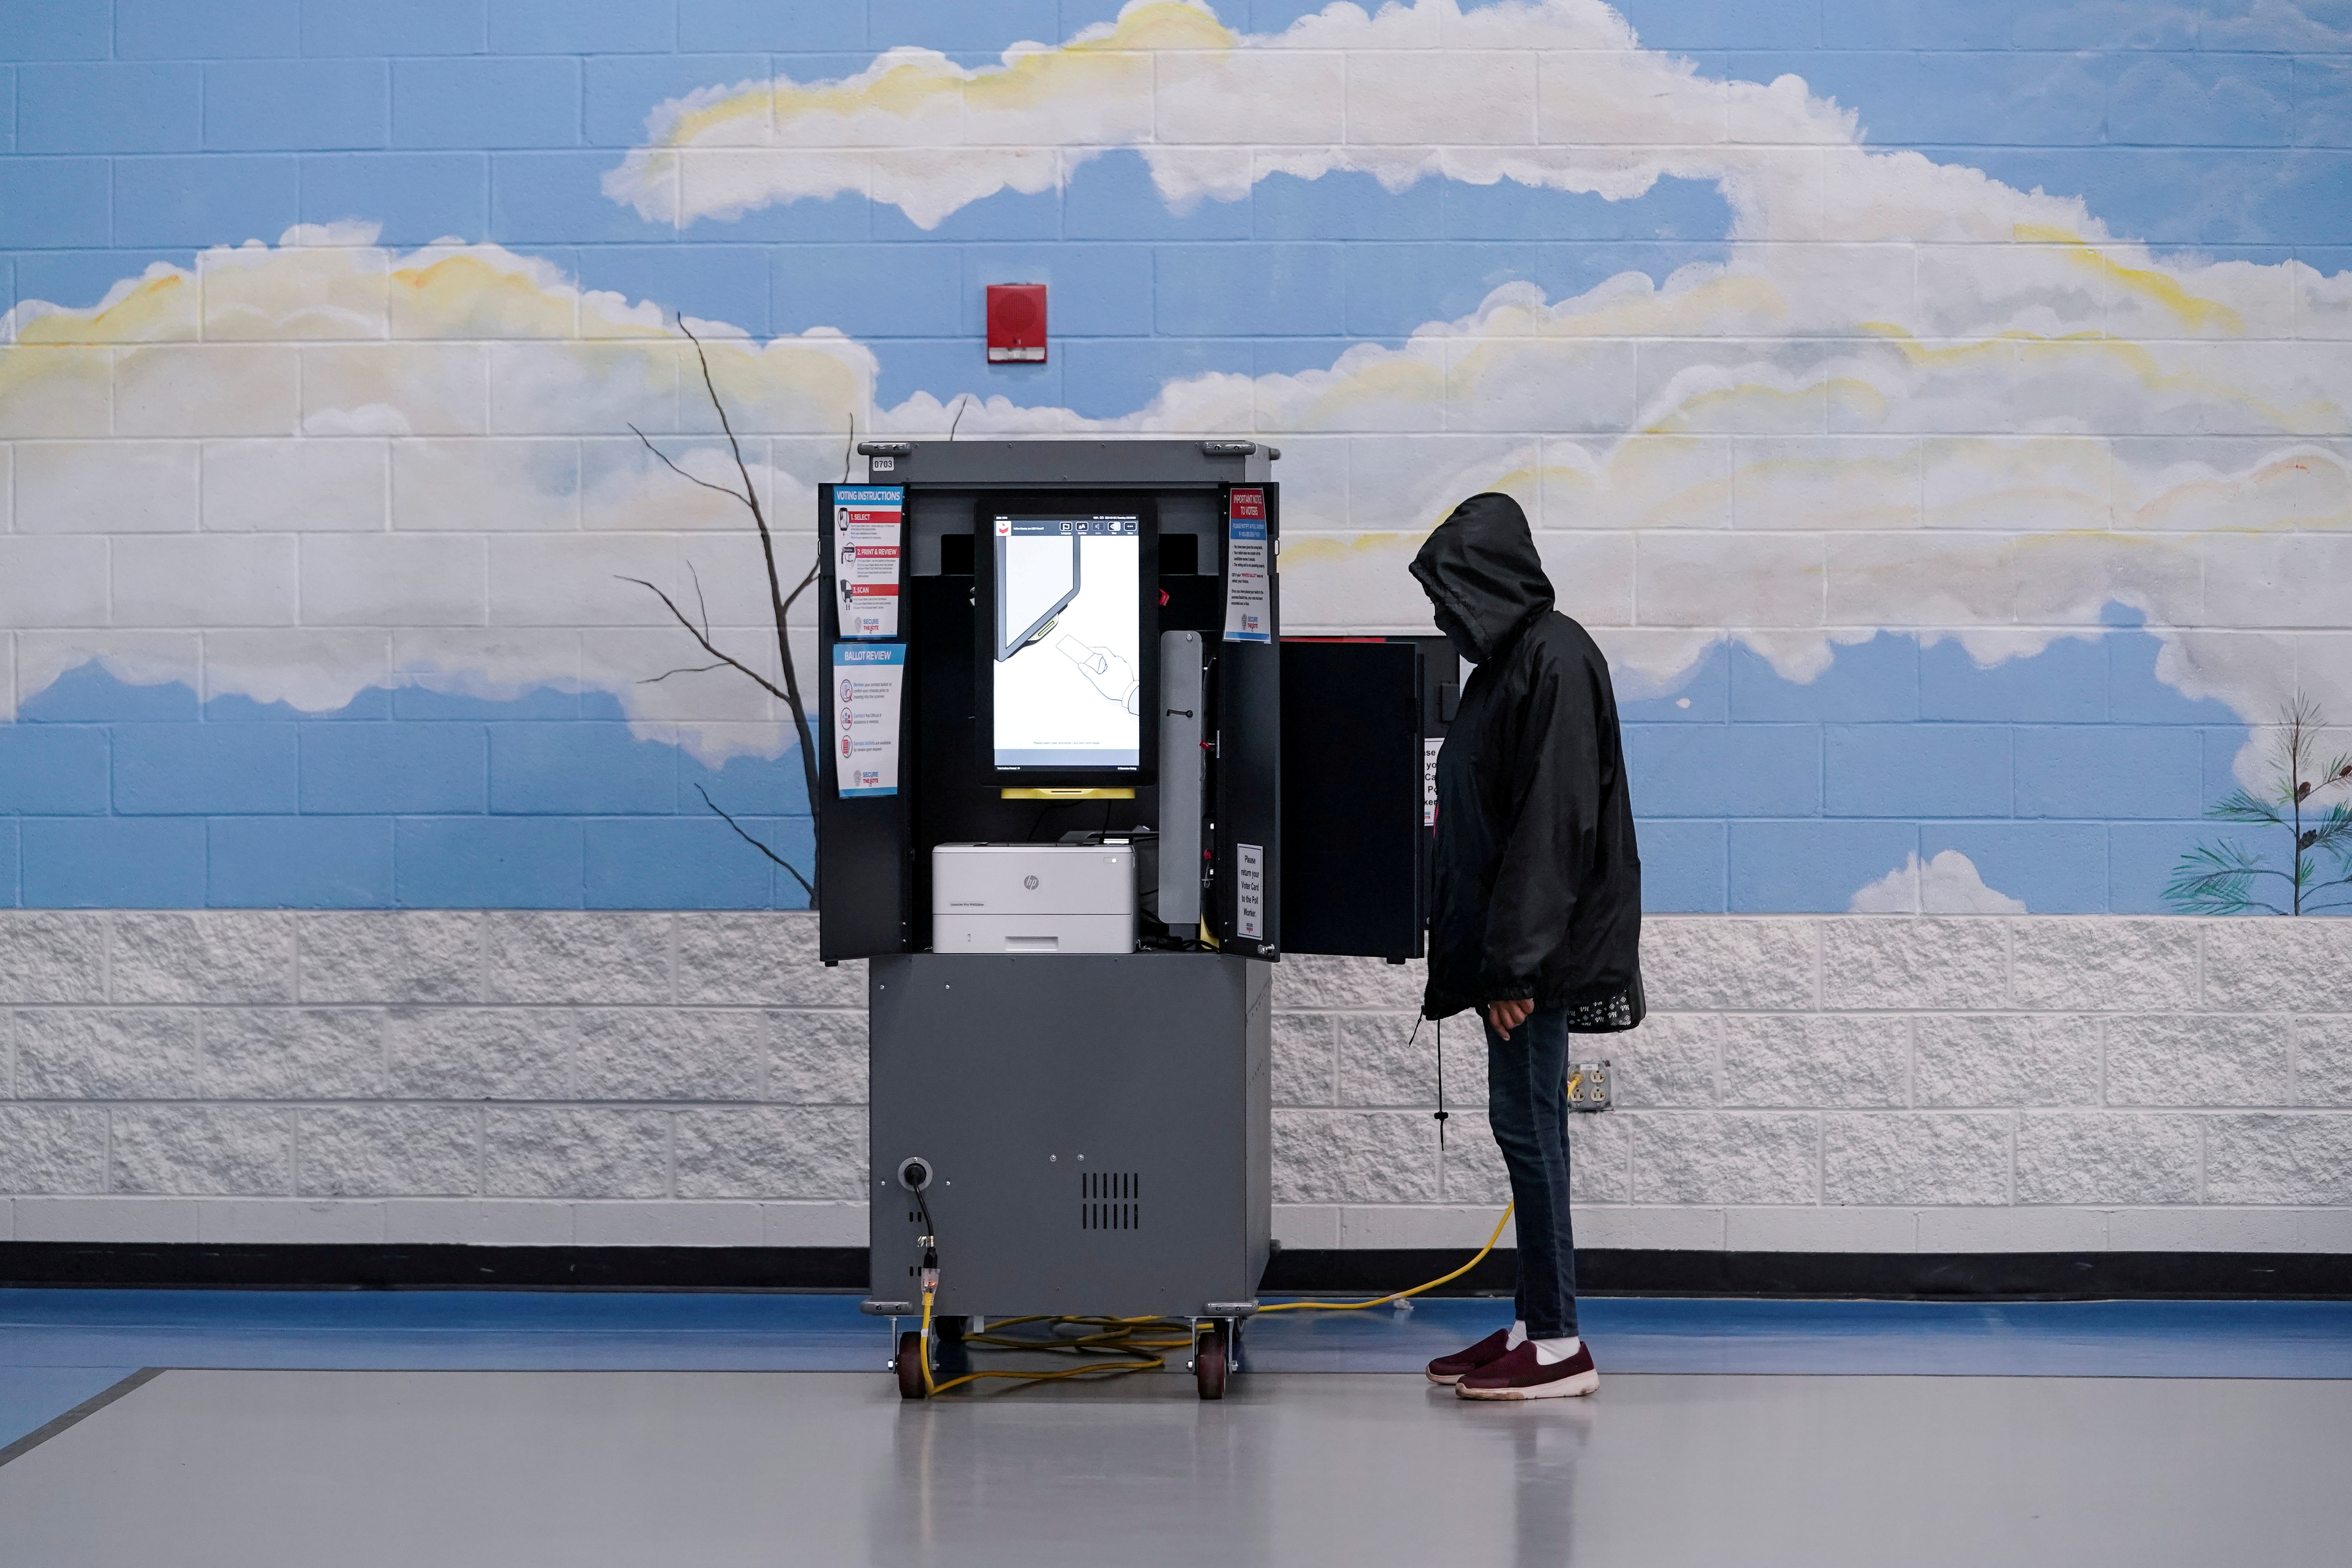 Voters cast their ballots in Georgia's Senate runoff elections at a Fulton County polling station in Atlanta, Georgia, U.S. January 5, 2021.  REUTERS/Elijah Nouvelage/File Photo